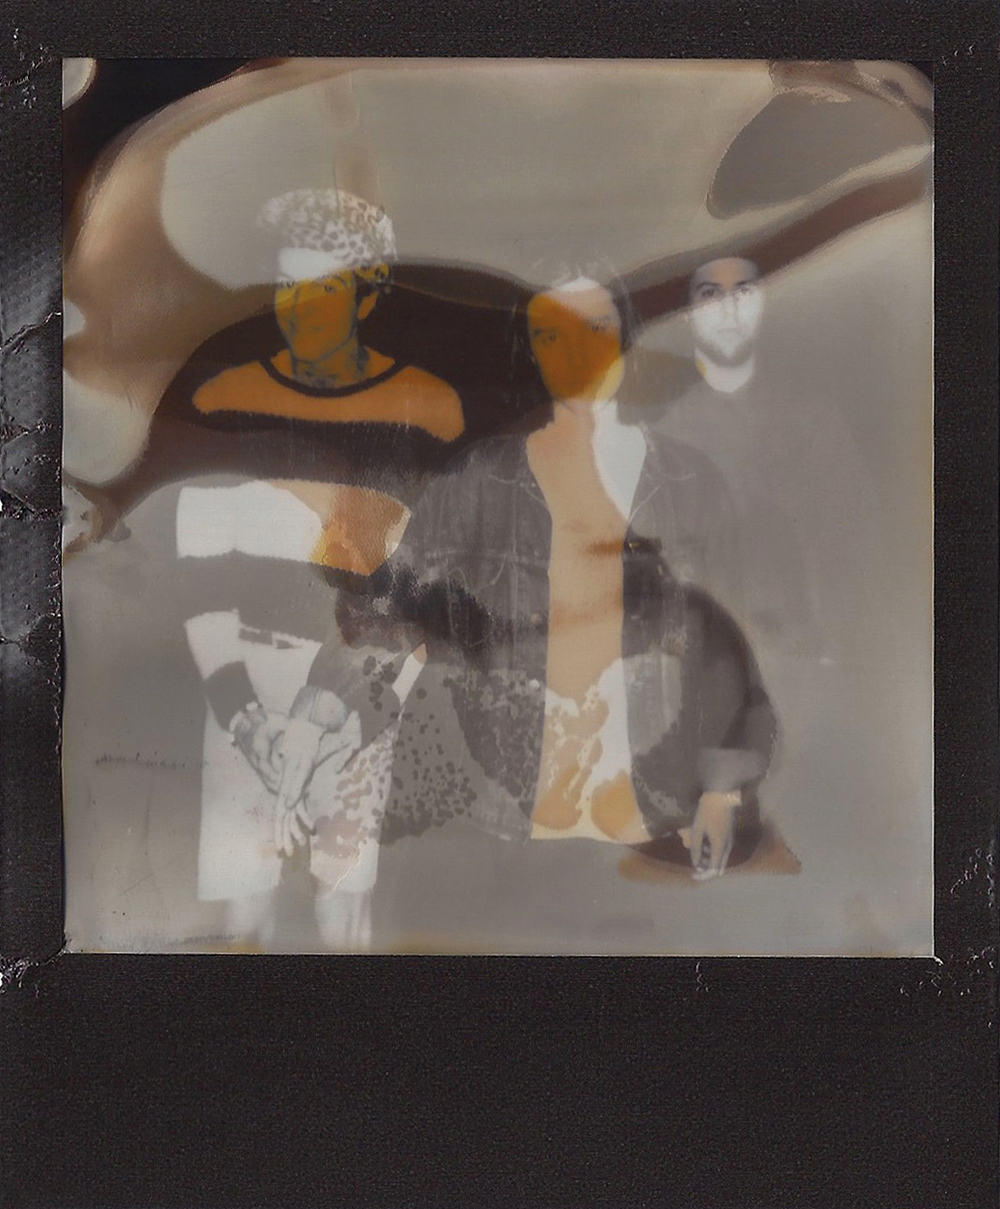 The-NBHD-Polaroid-20-casenruiz.jpg